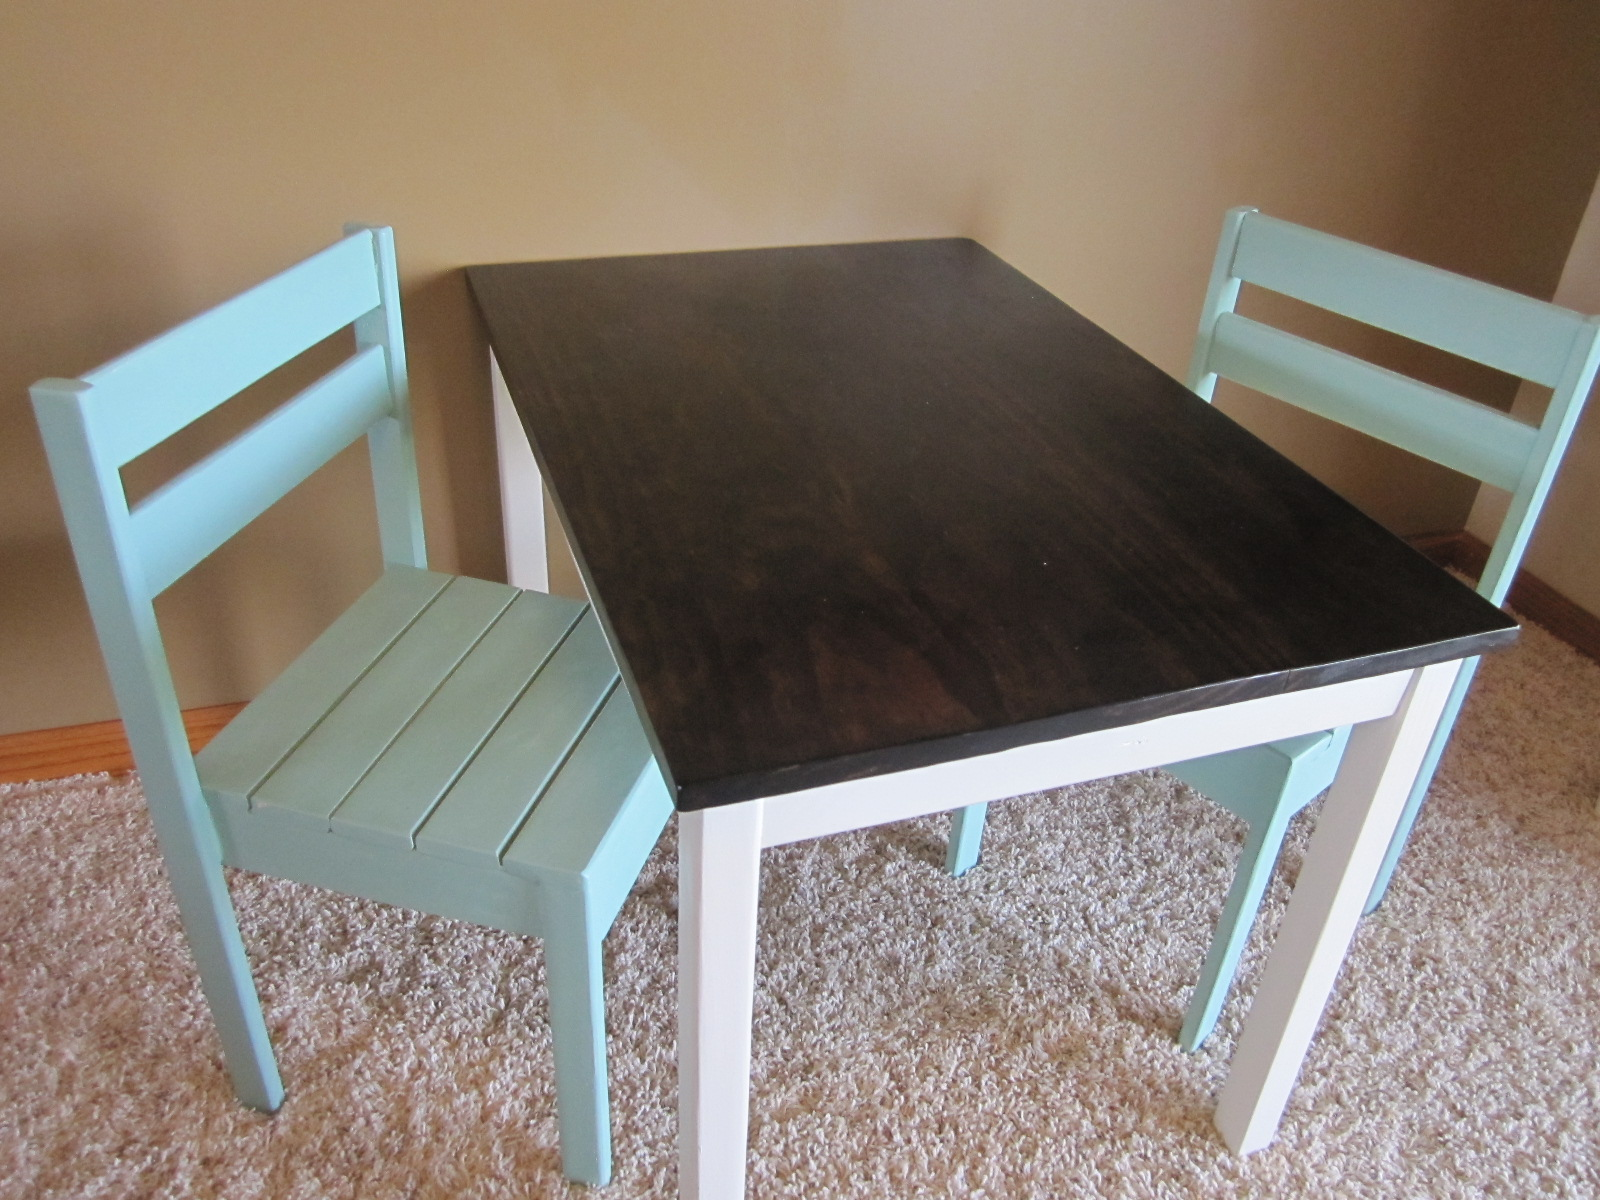 play table and chairs chair covers cheap for sale ana white diy projects